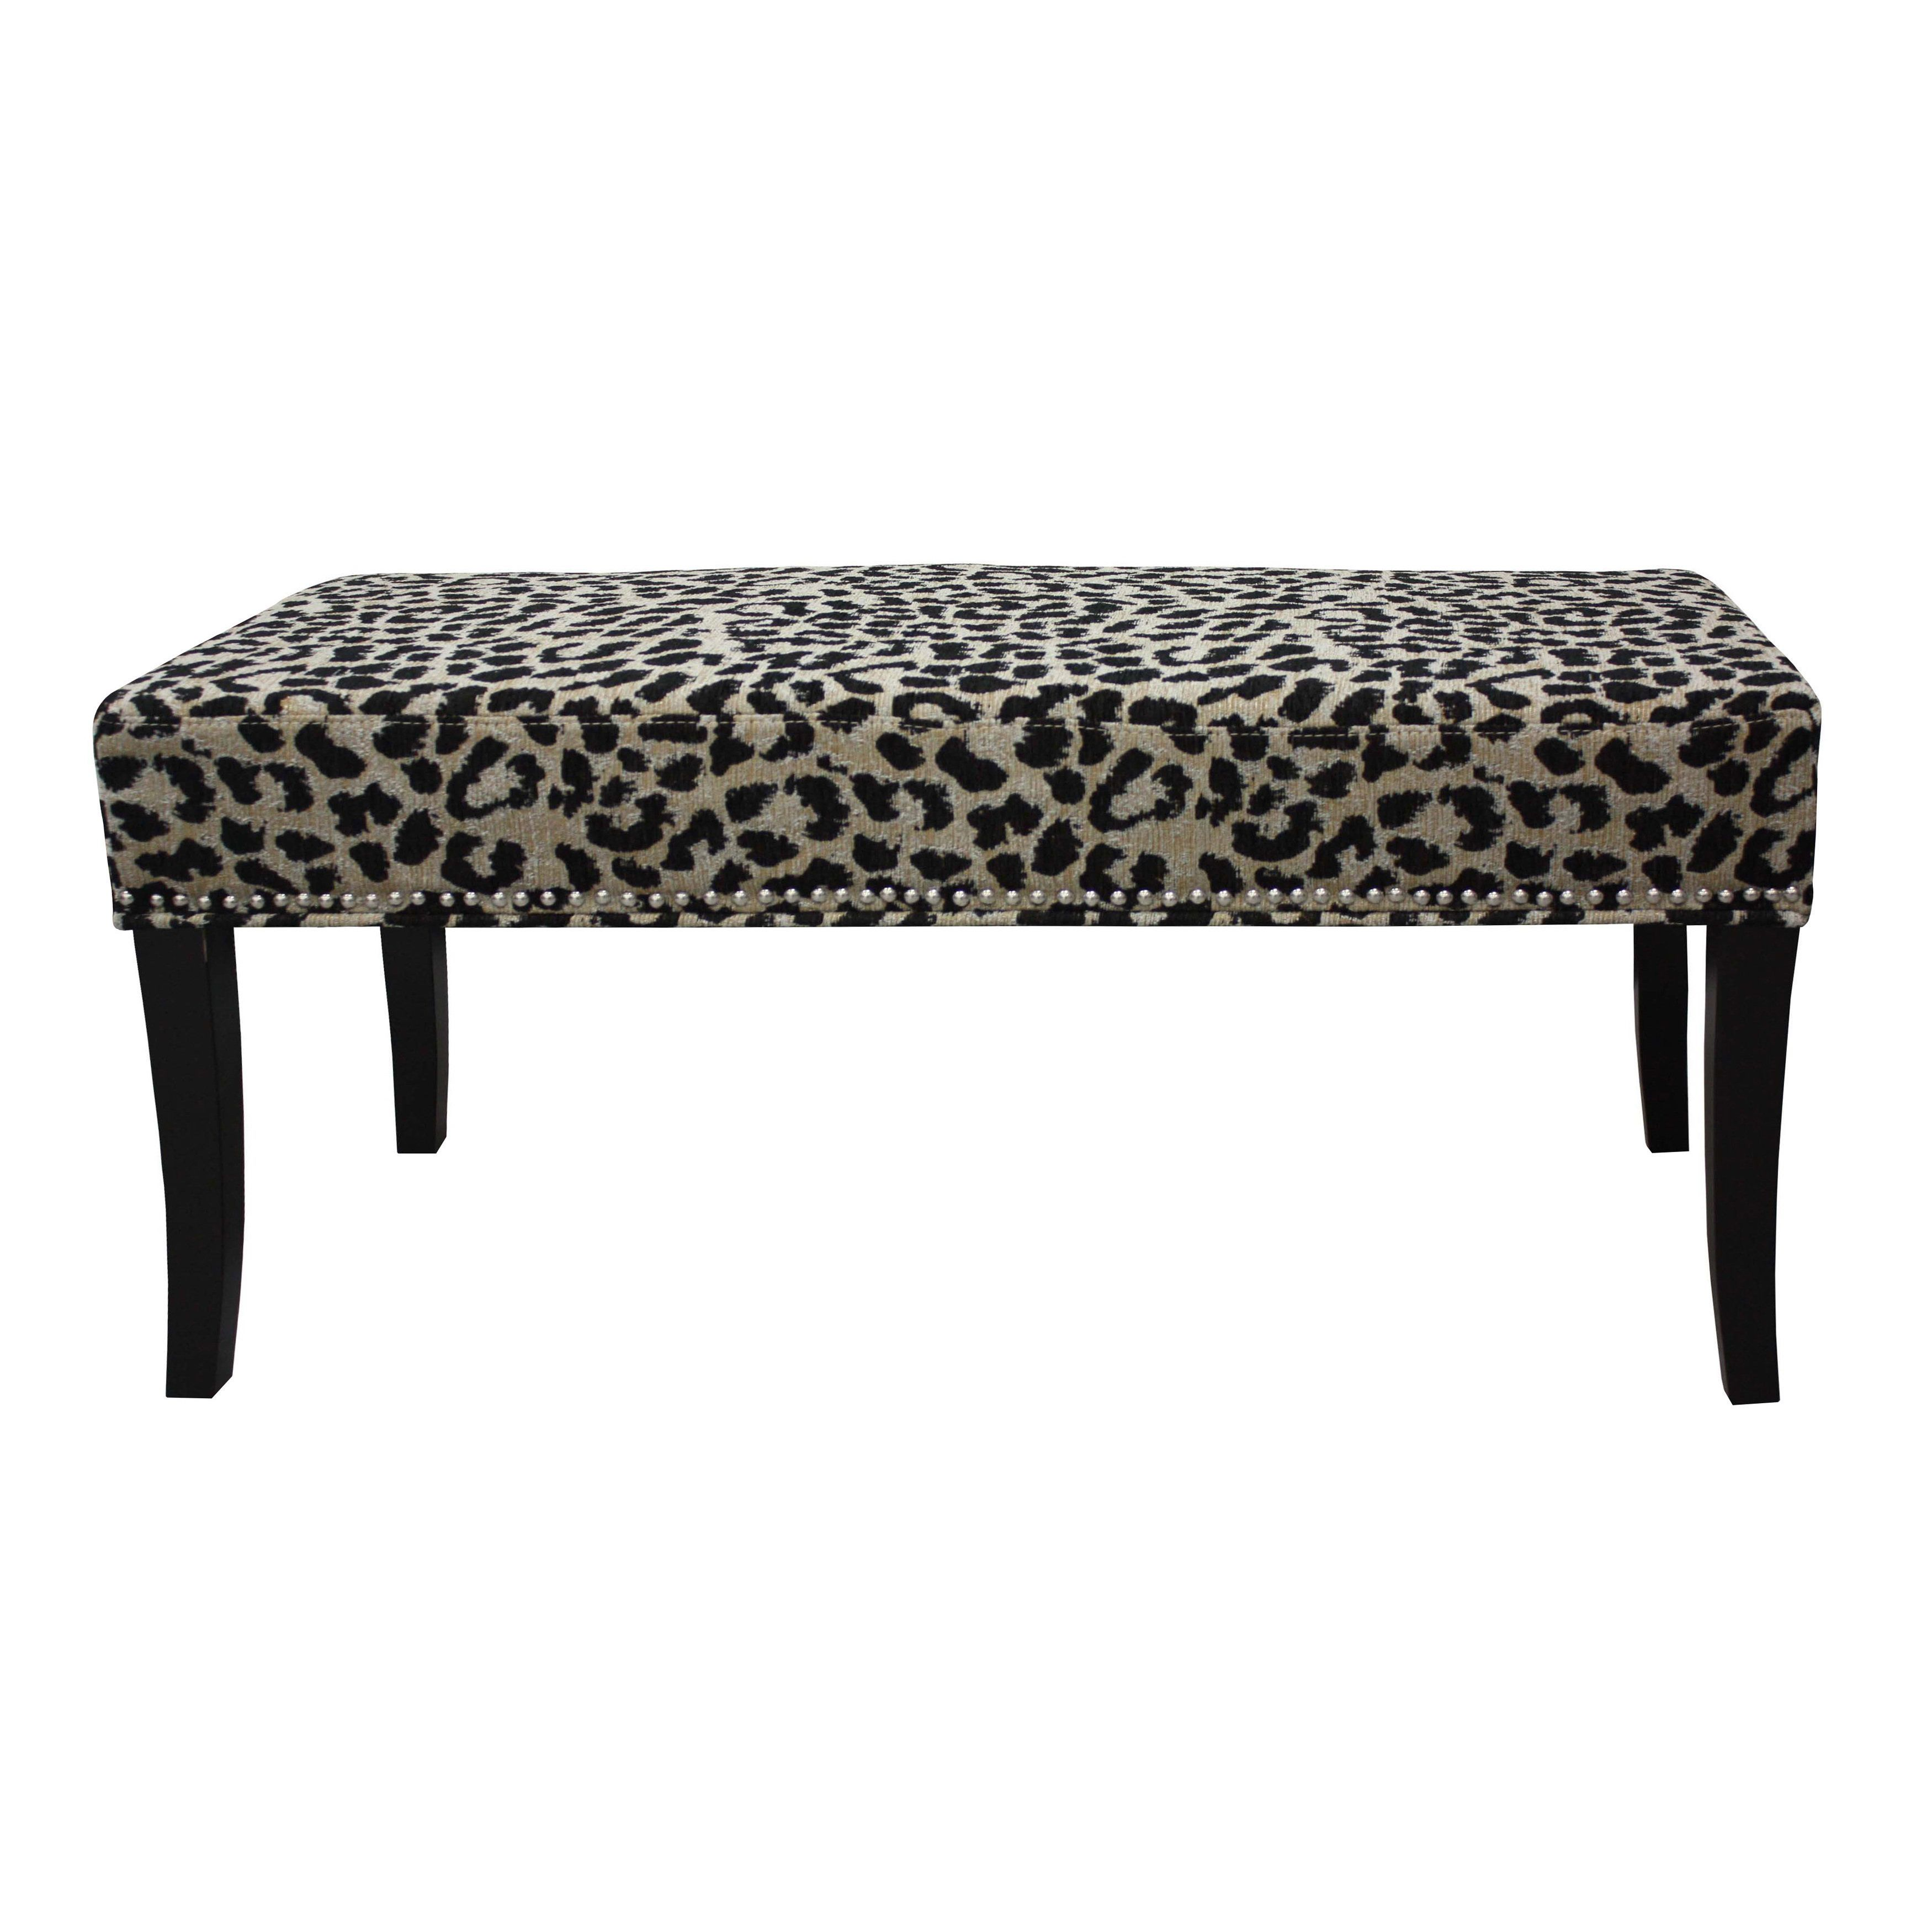 Hd Couture Black And Taupe Cheetah Chenille 40 Inch Bench Black